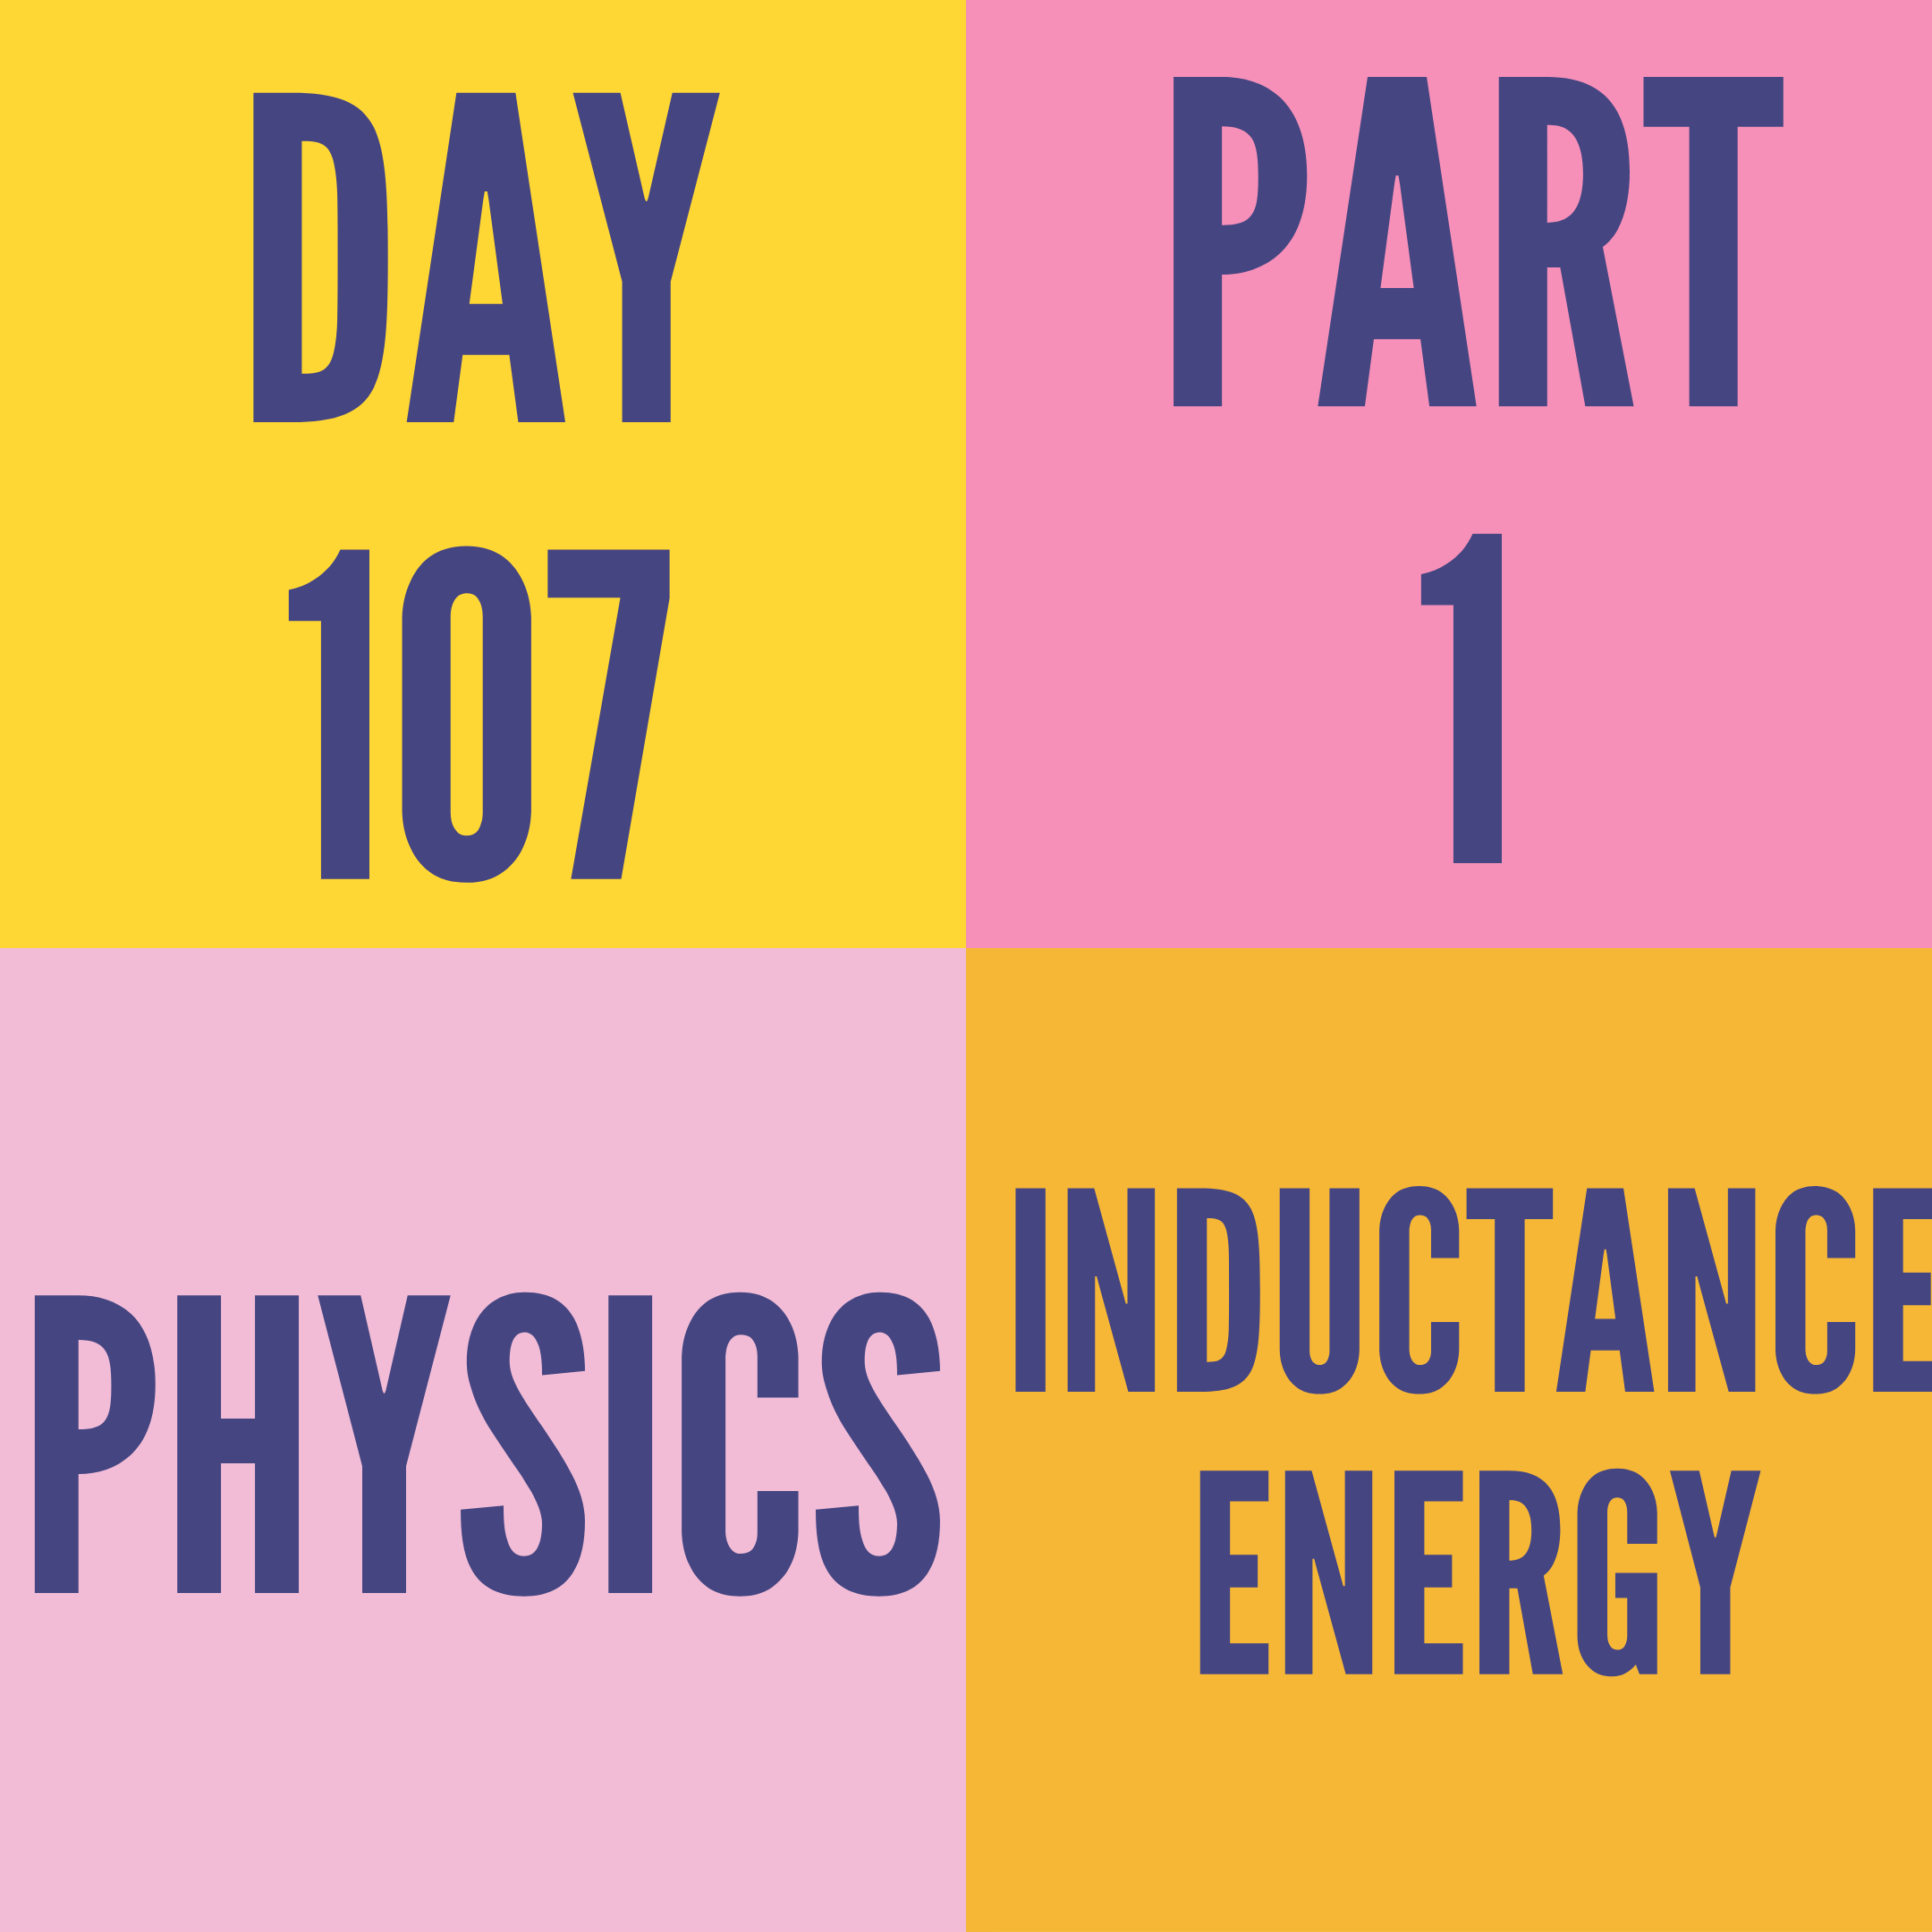 DAY-107 PART-1 INDUCTANCE ENERGY